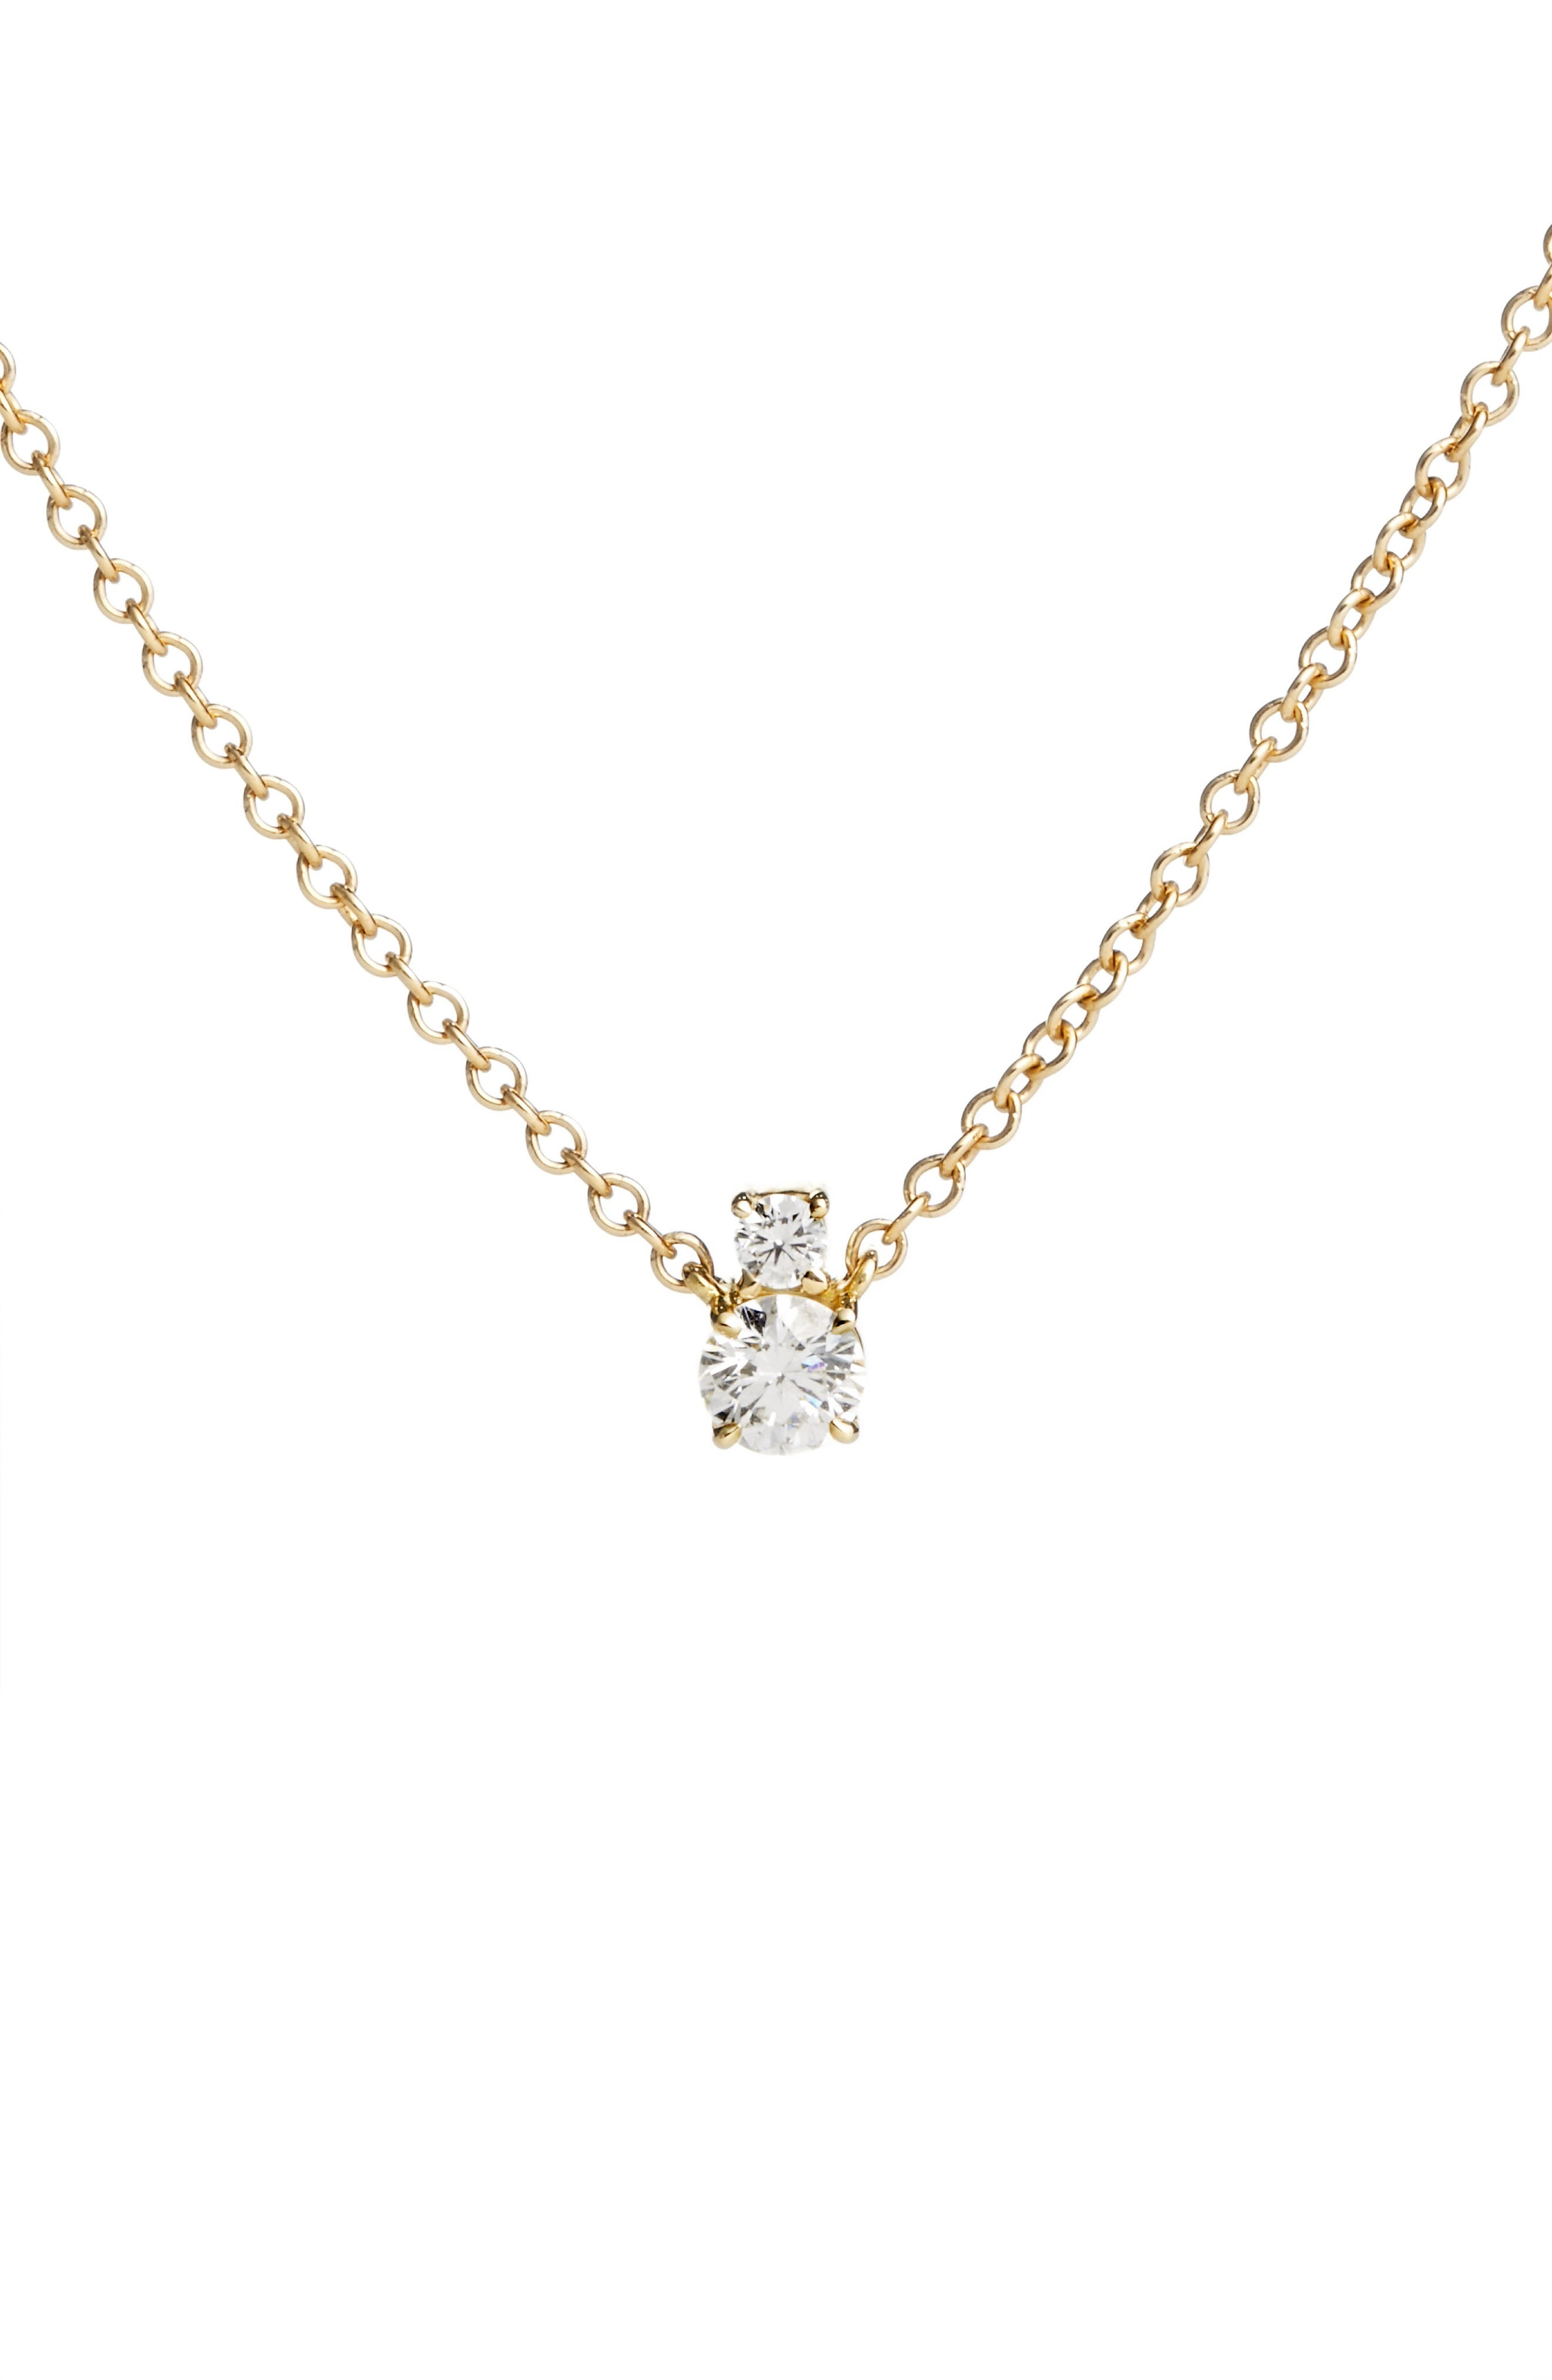 Prive Luxe 18K Gold & Diamond Solitaire Necklace,                         Main,                         color, 710